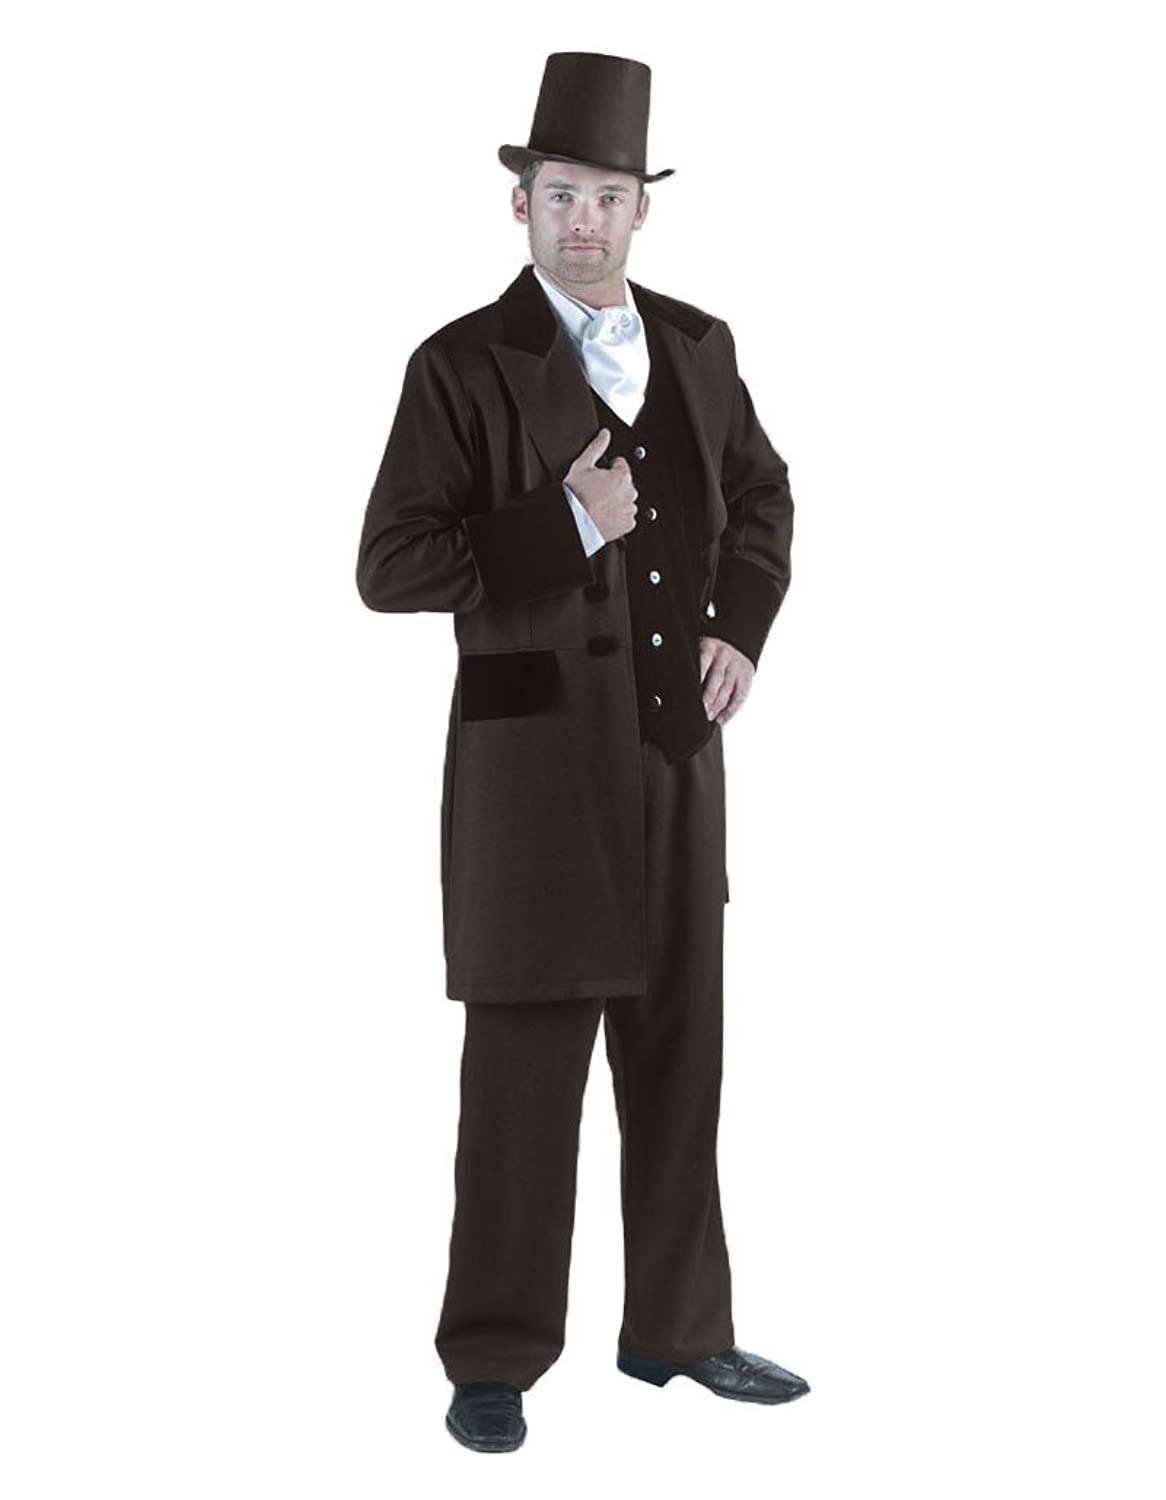 Victorian Men's Costumes: Mad Hatter, Rhet Butler, Willy Wonka Mens Rhett Butler Suit Theater Costume $249.99 AT vintagedancer.com